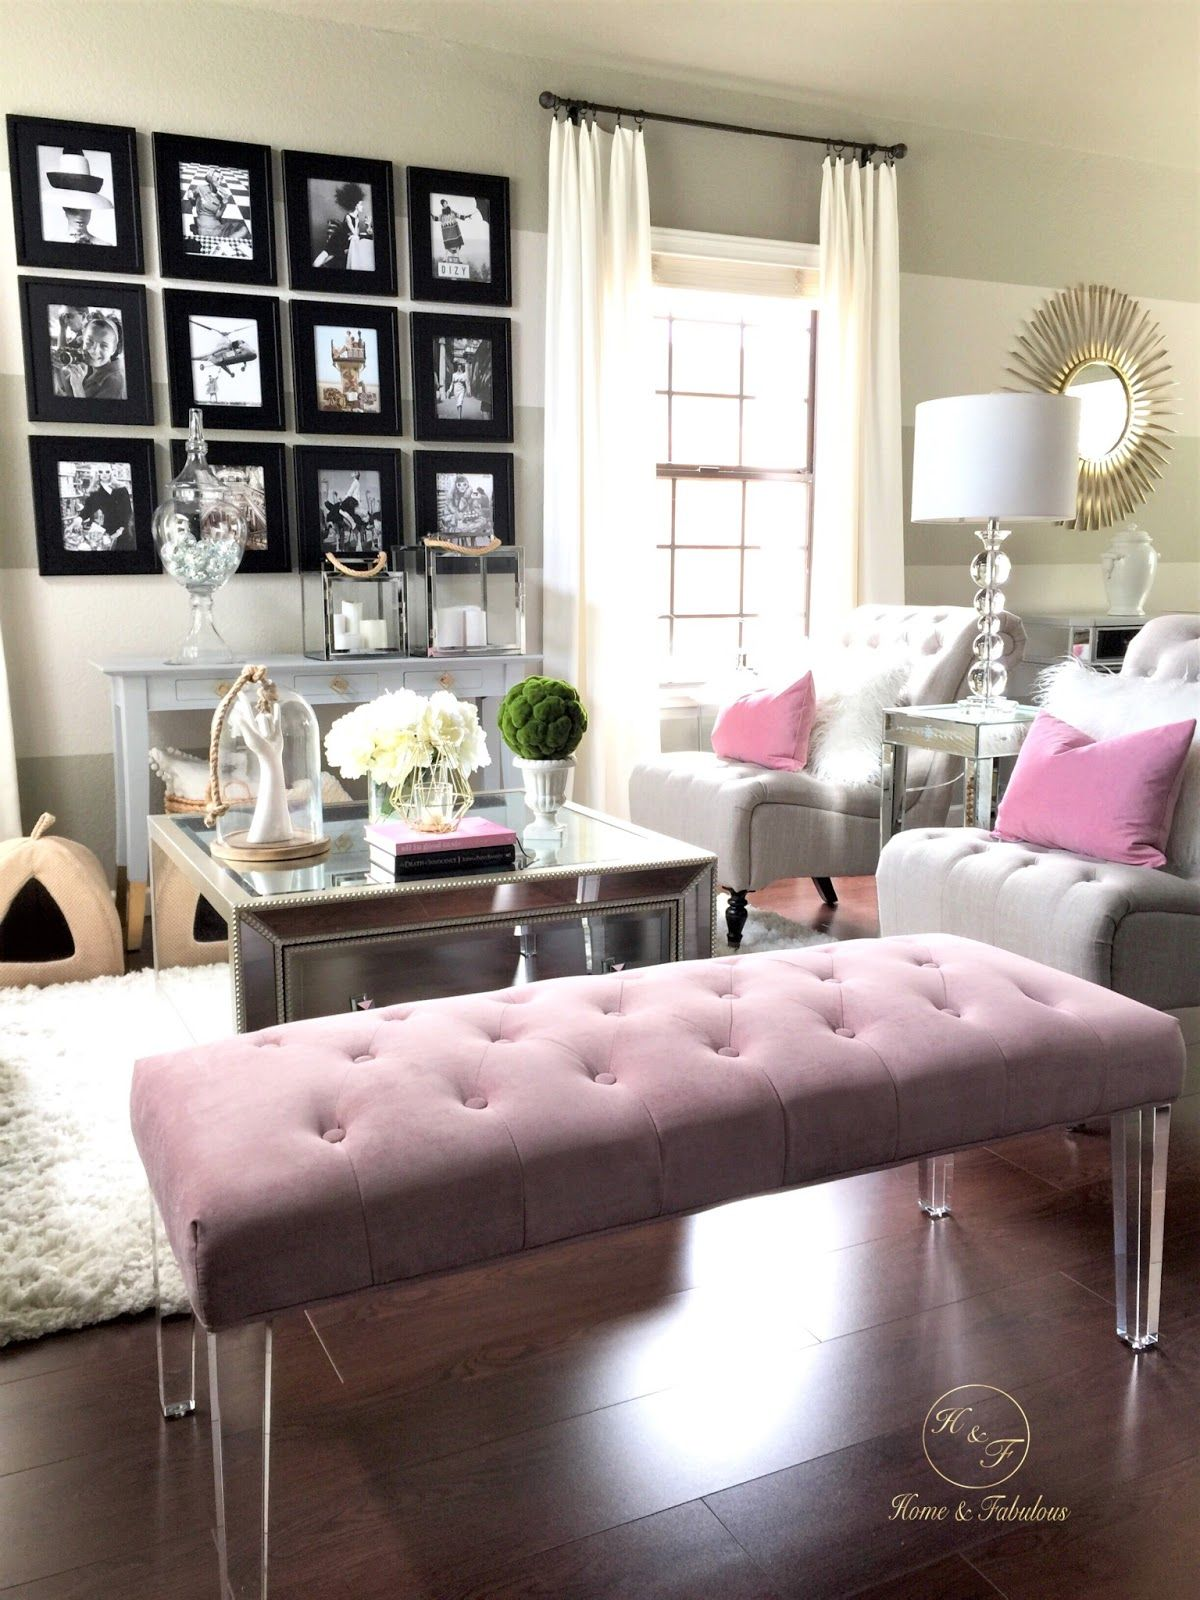 How One Couch Inspired A Living Room Transformation Homegoods Glam Living Room Living Room Transformation Living Room Bench